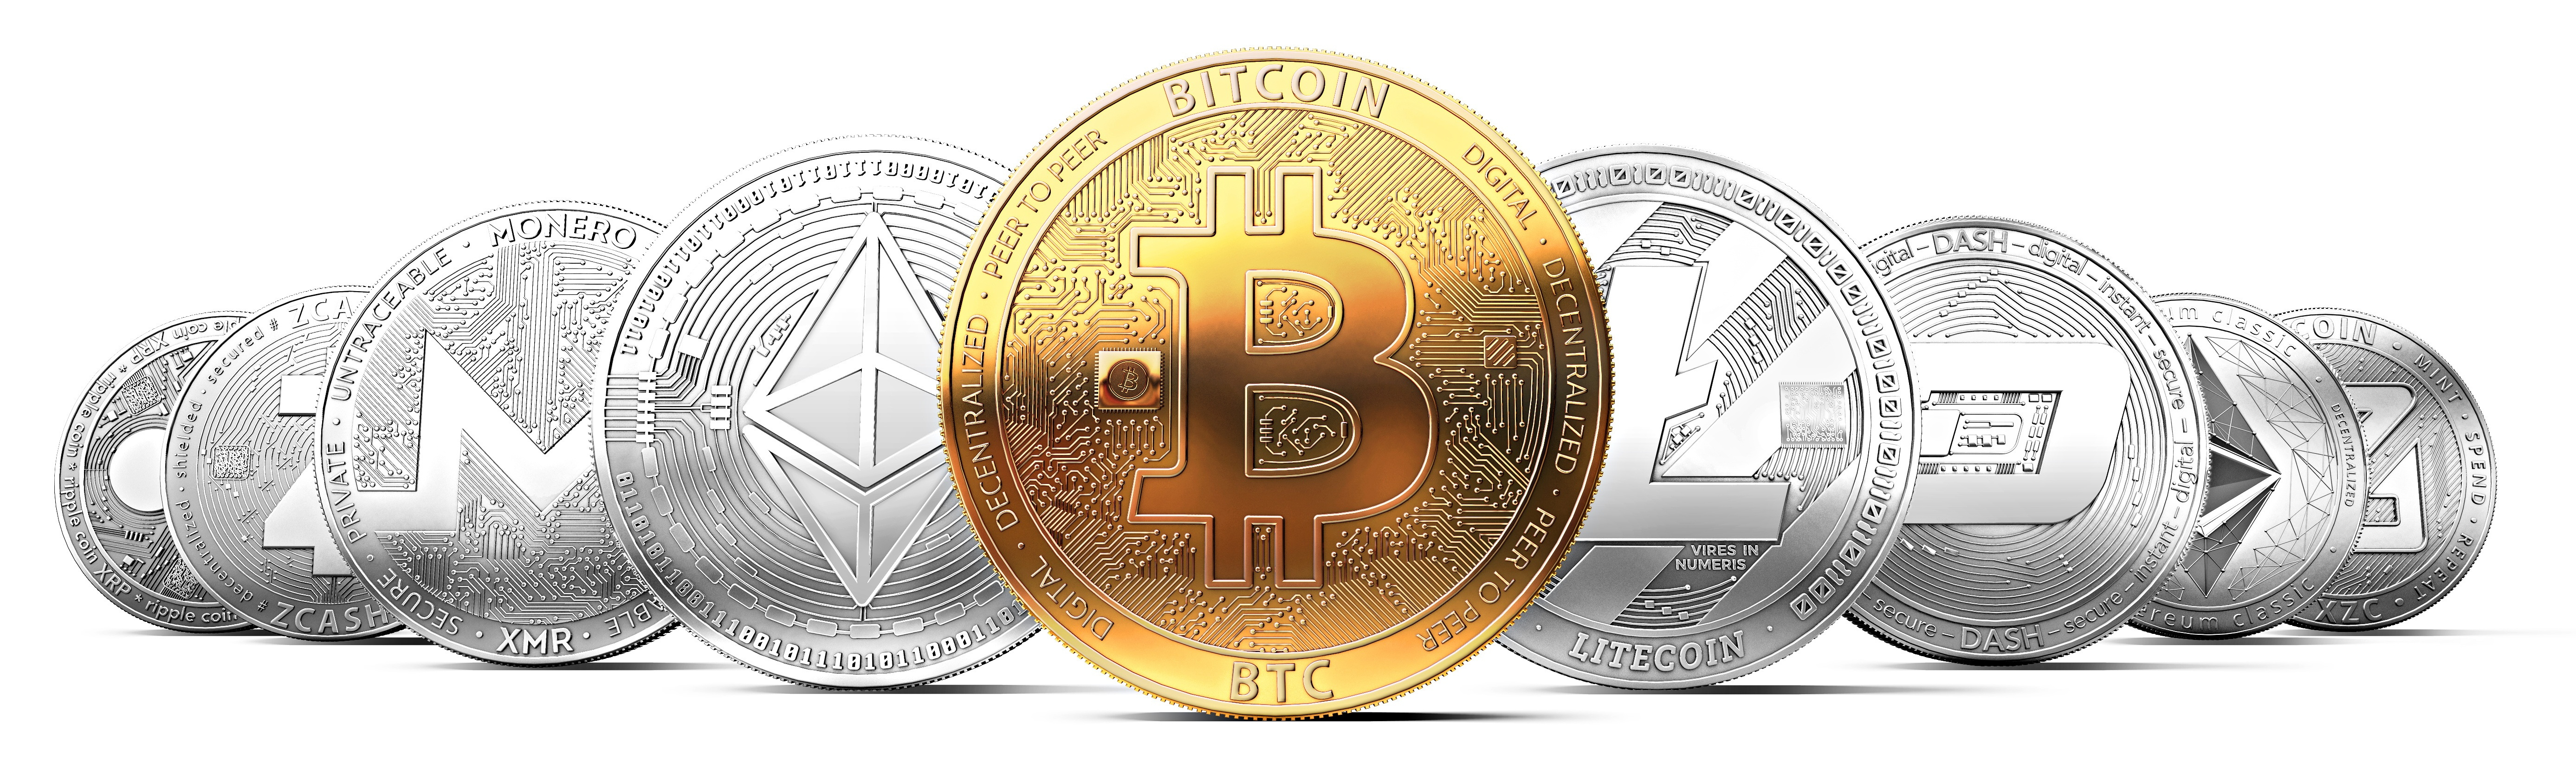 Why Is Bitcoin So Popular Among Young People?